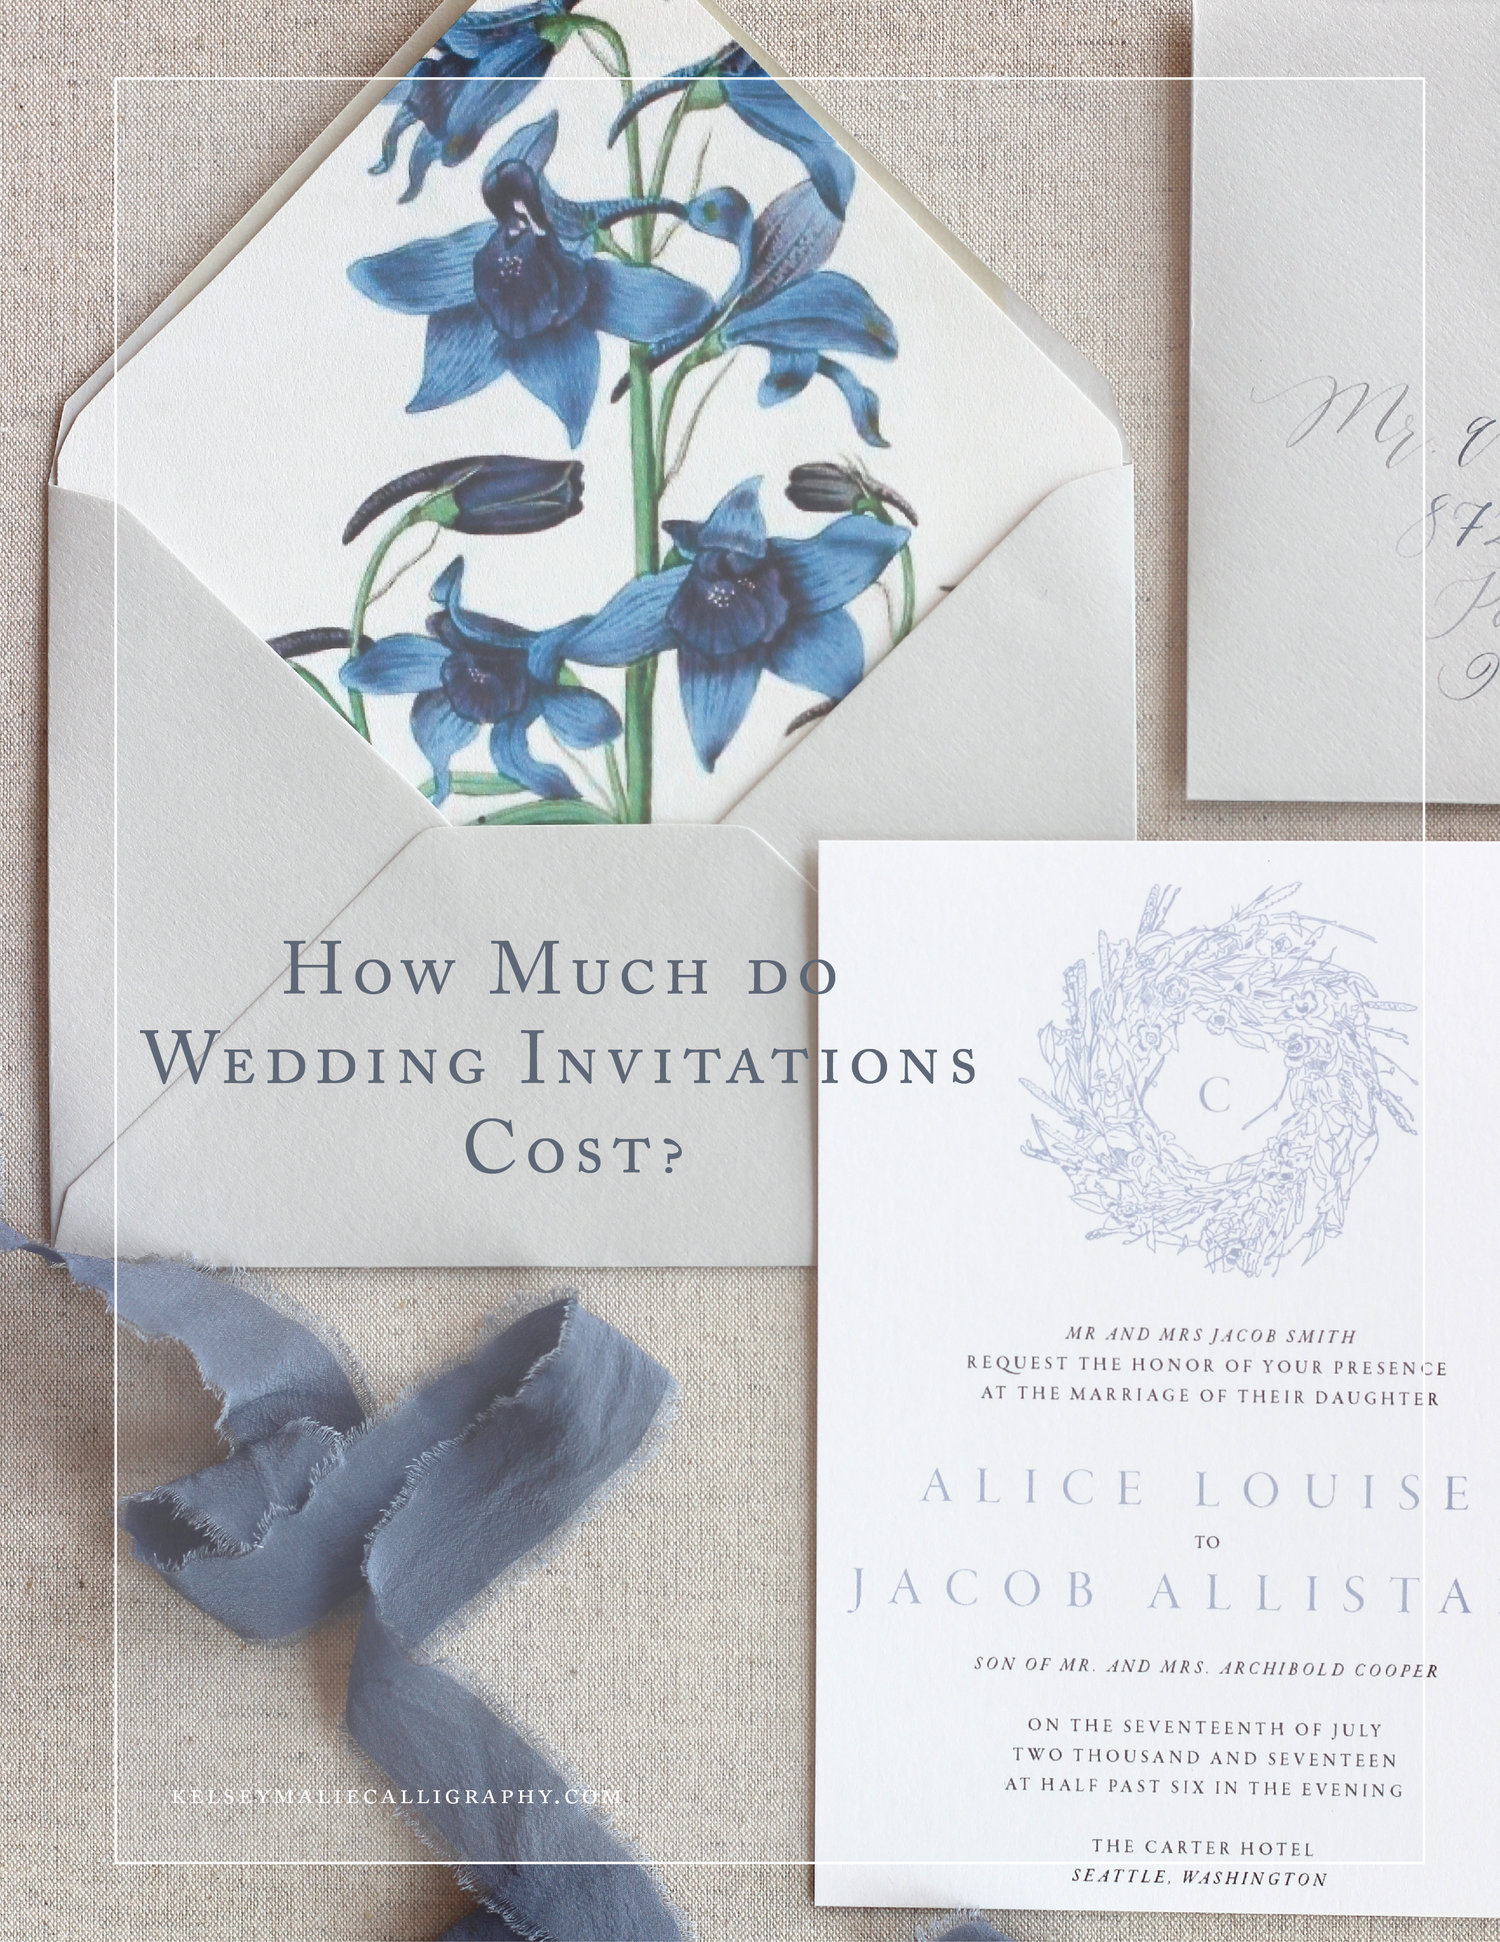 How Much Do Wedding Invitations Cost? — Kelsey Malie Calligraphy